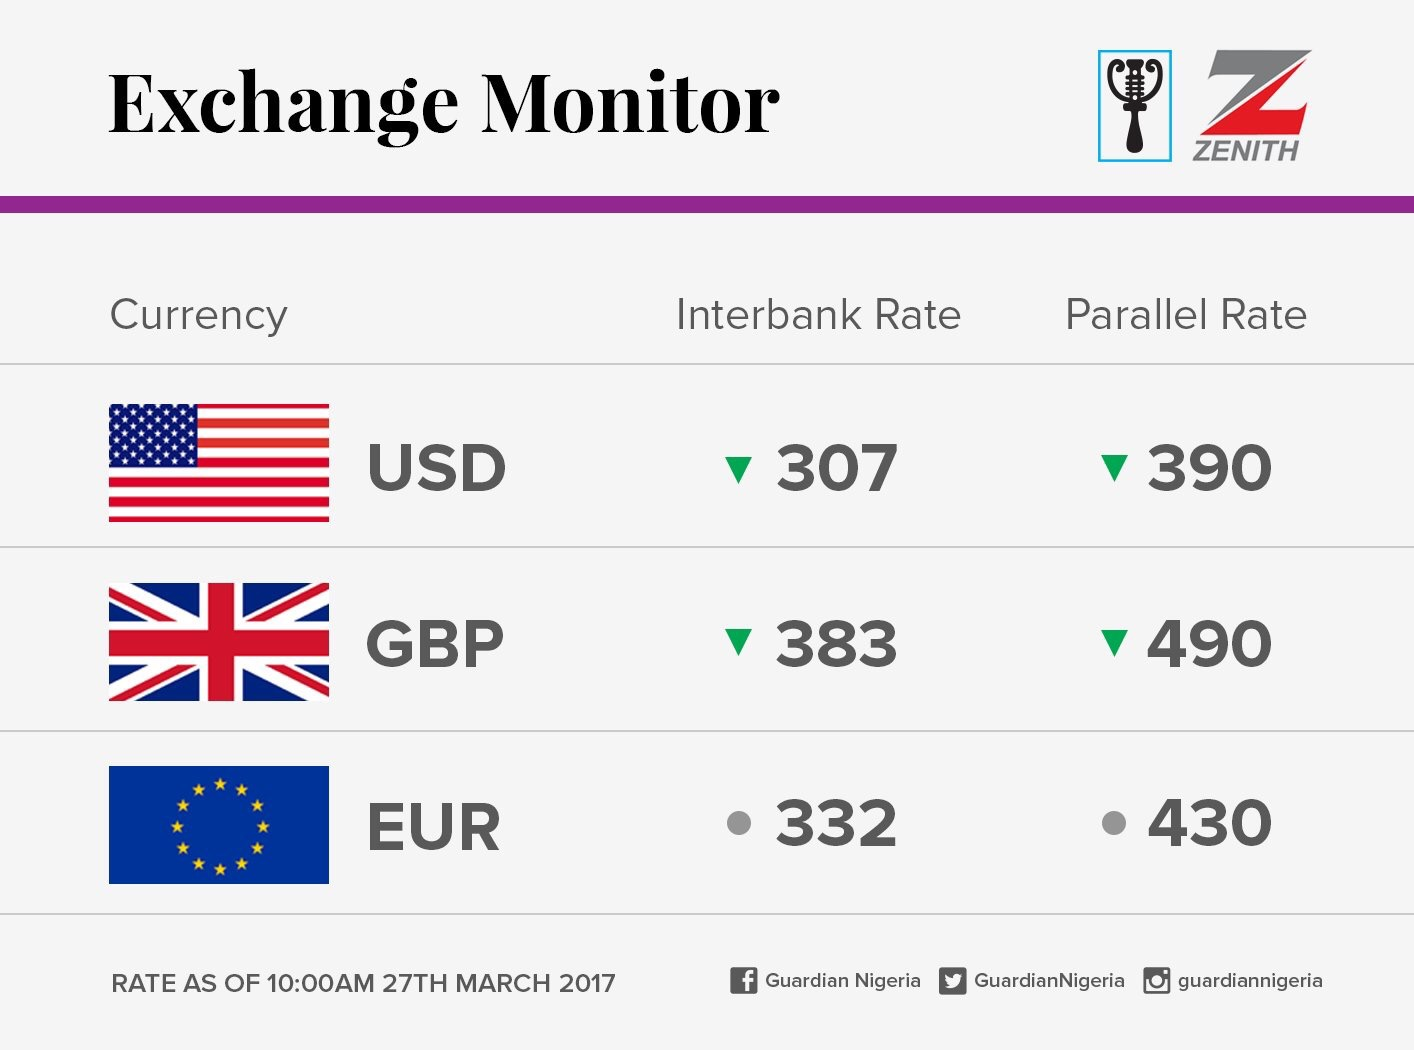 Exchange Rate For 27th March 2017